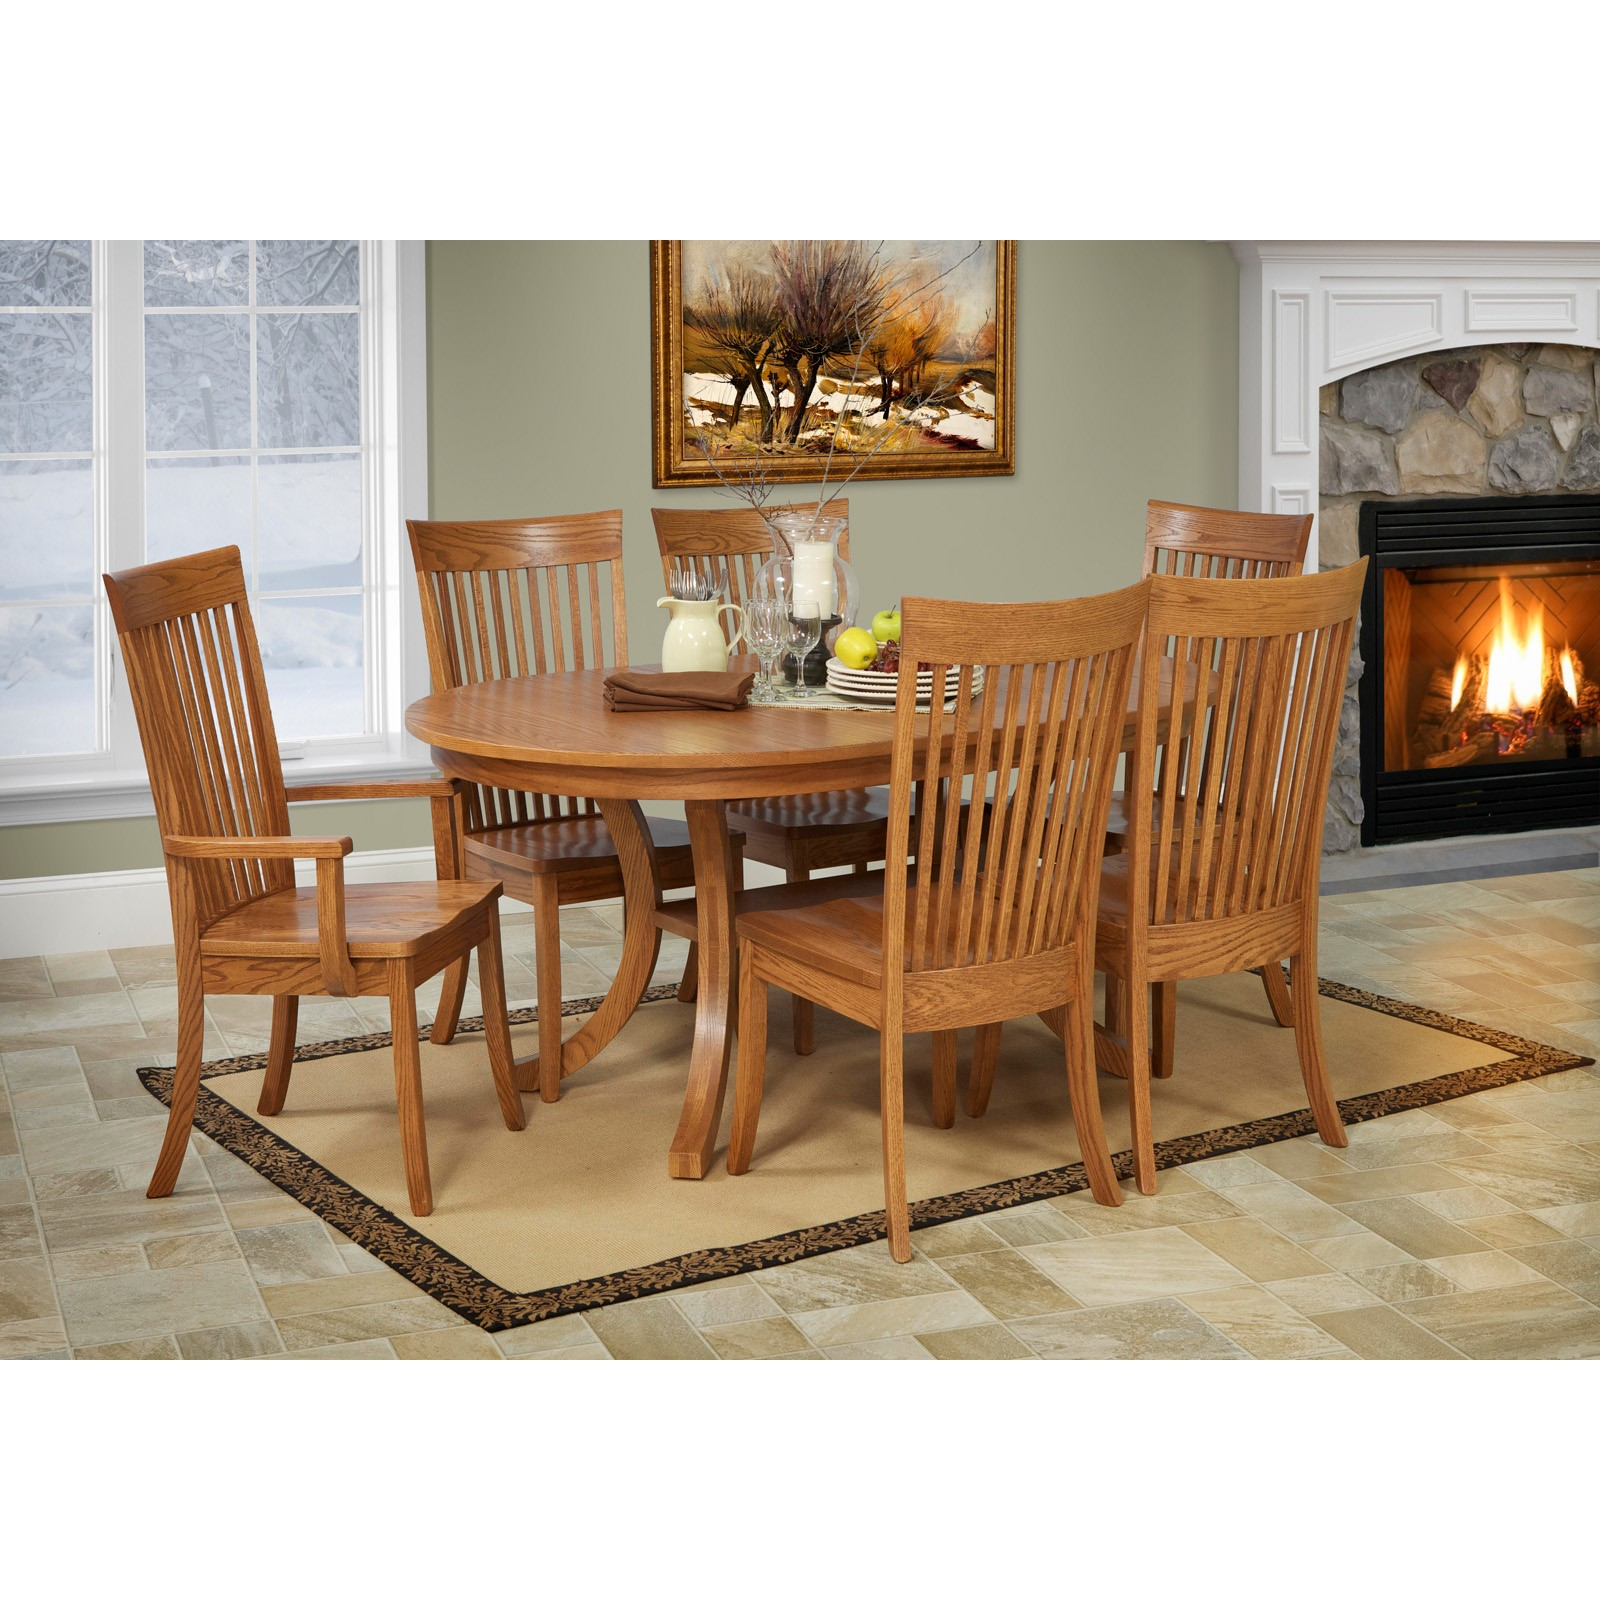 Dining Room Collections: Chelsea 7 Pc Dining Set By Trailway